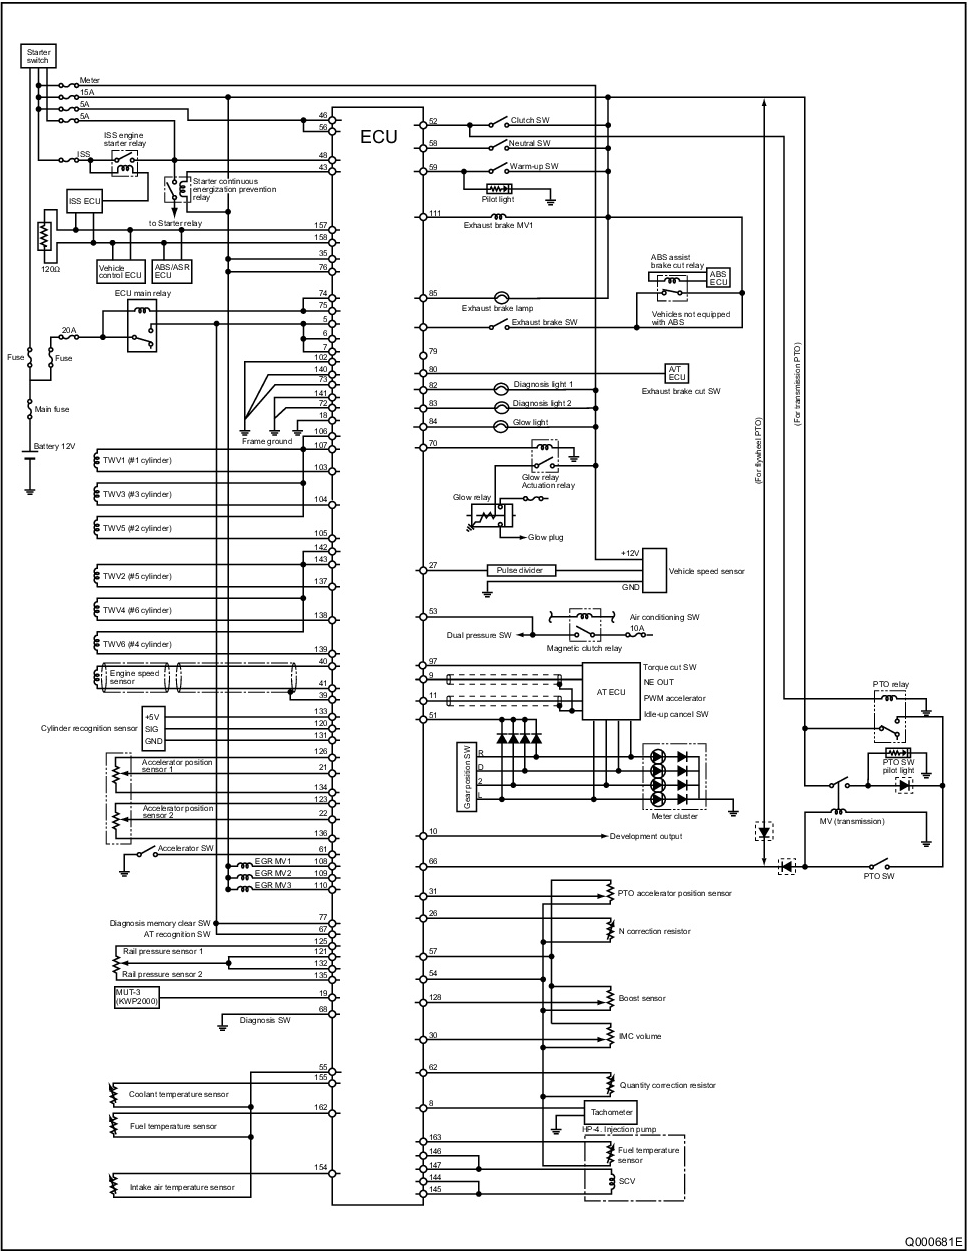 DIAGRAM] 04 Mitsubishi Fuso Wiring Diagram FULL Version HD Quality Wiring  Diagram - WEBFLOWCHARTDIAGRAMS.BUMBLEWEB.FRwebflowchartdiagrams.bumbleweb.fr